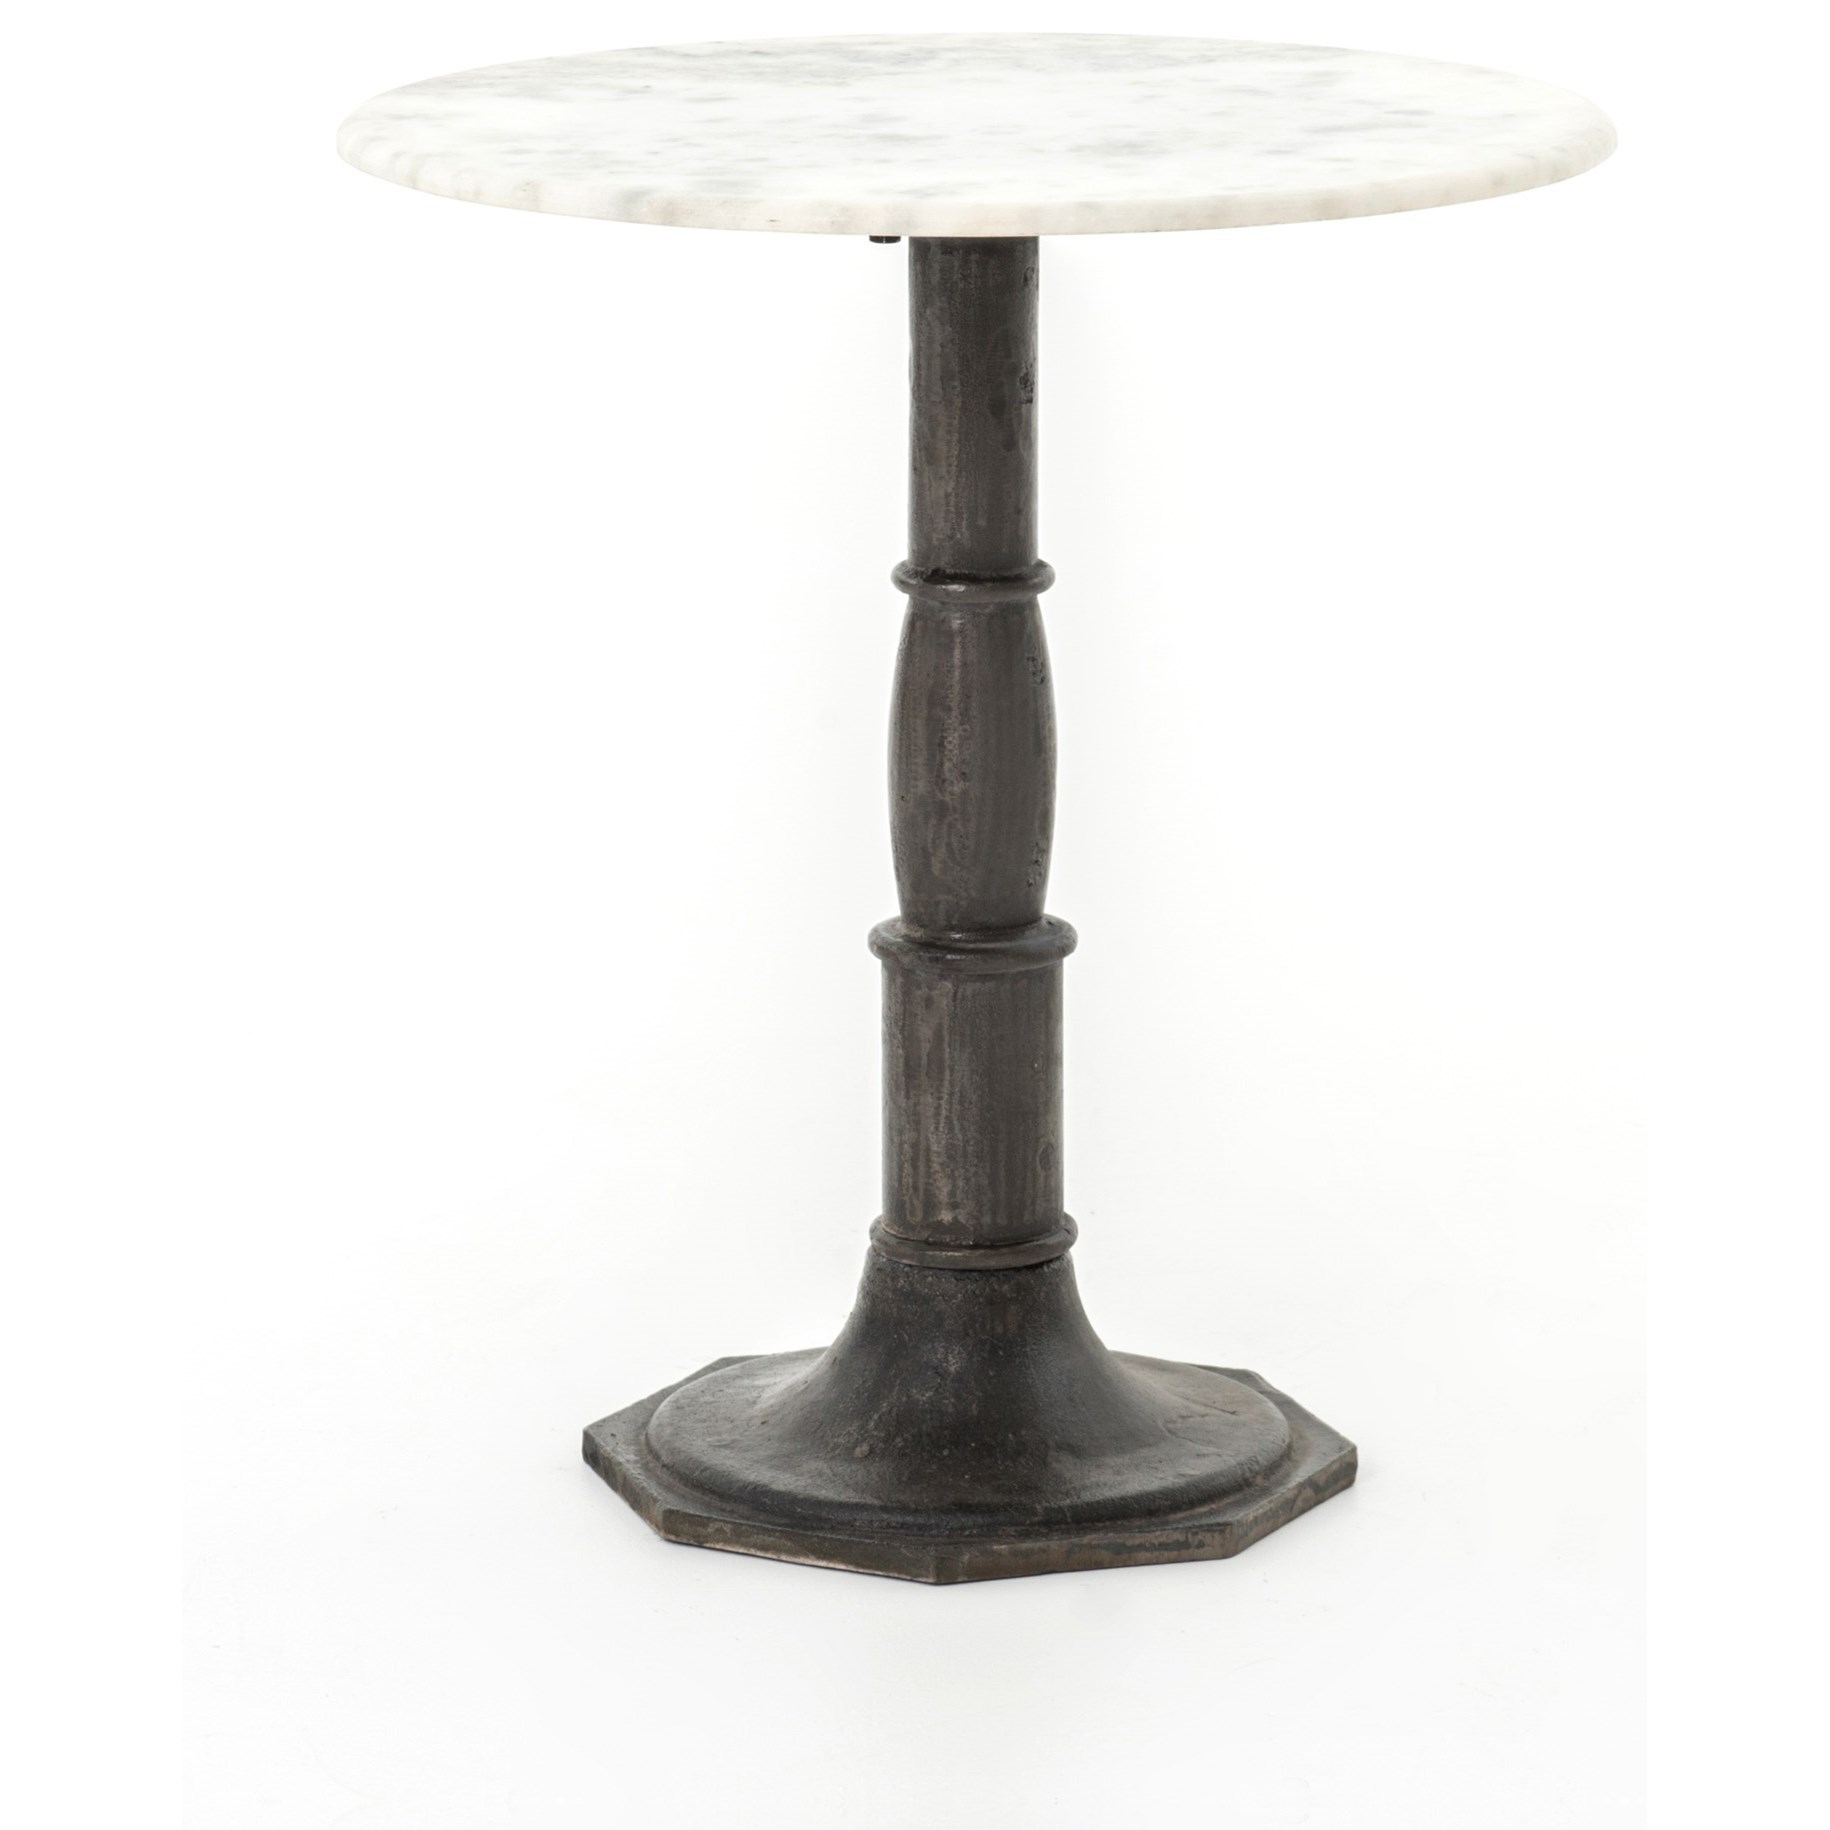 Four Hands Rockwell Lucy Side Table-Carbon Wash, Marble Top - Item Number: IRCK-048-CBW